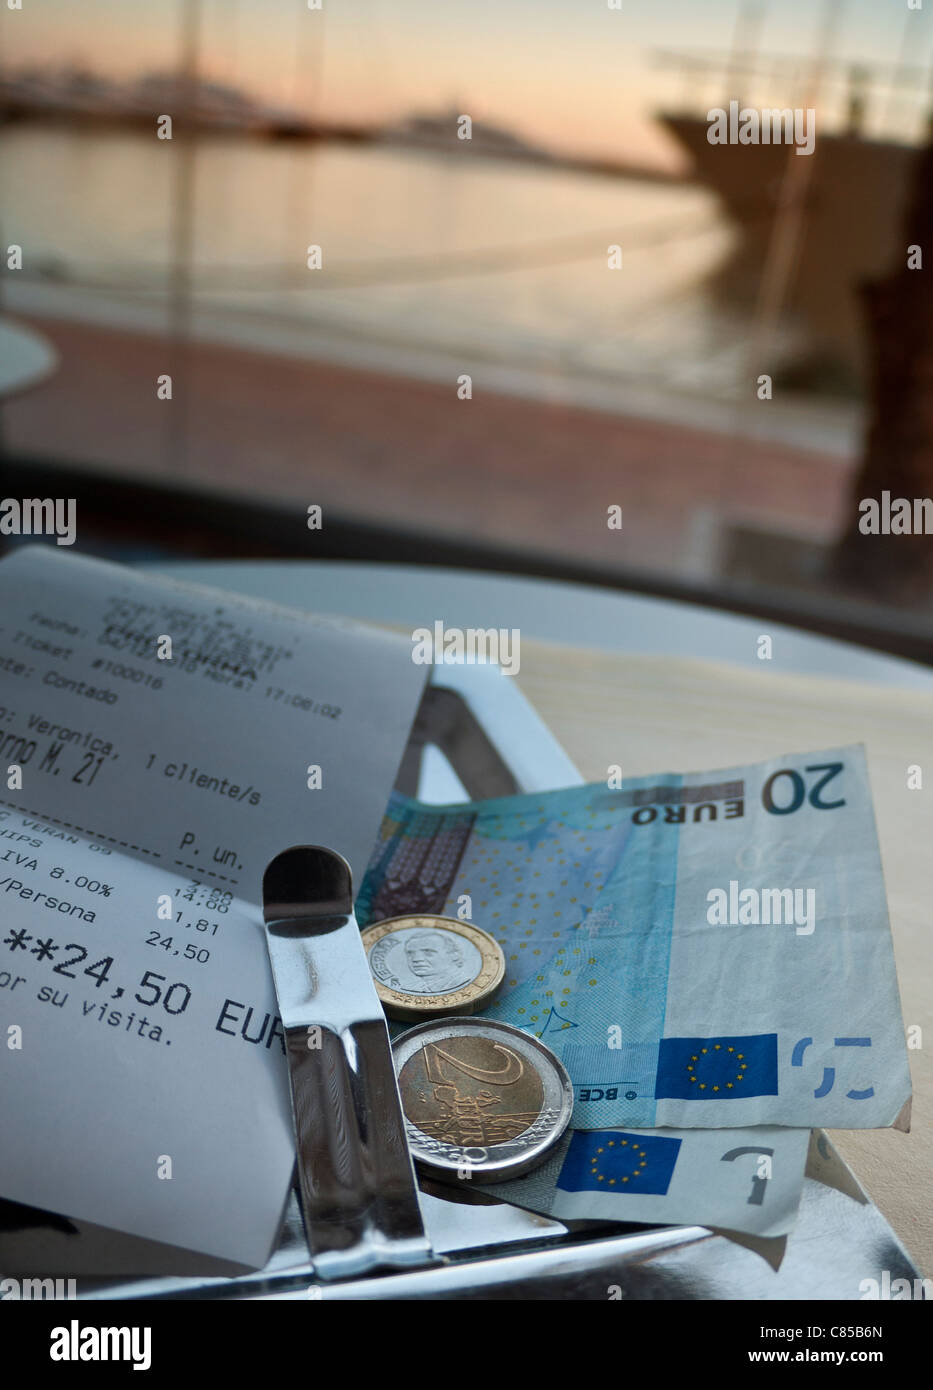 Bill with payment in Euros at luxury waterside restaurant table sunset Puerto Portals Palma de Mallorca Spain - Stock Image